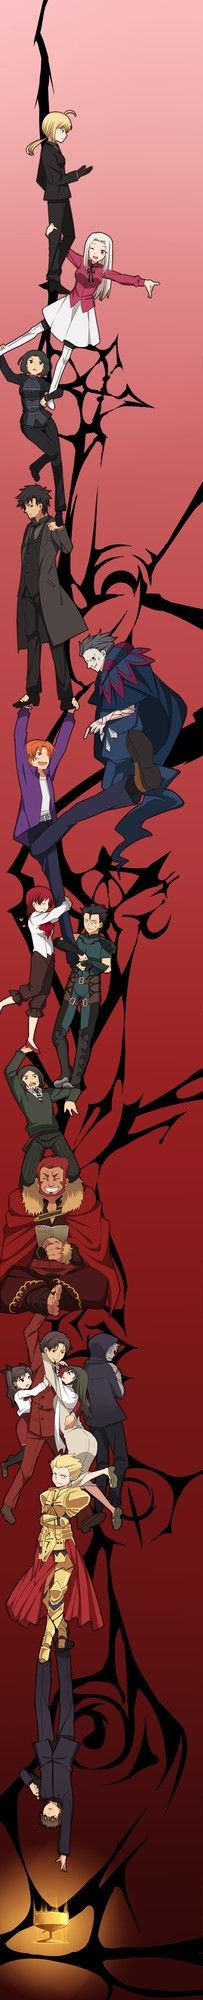 Fate/zero x Durarara!! This made me so happy!